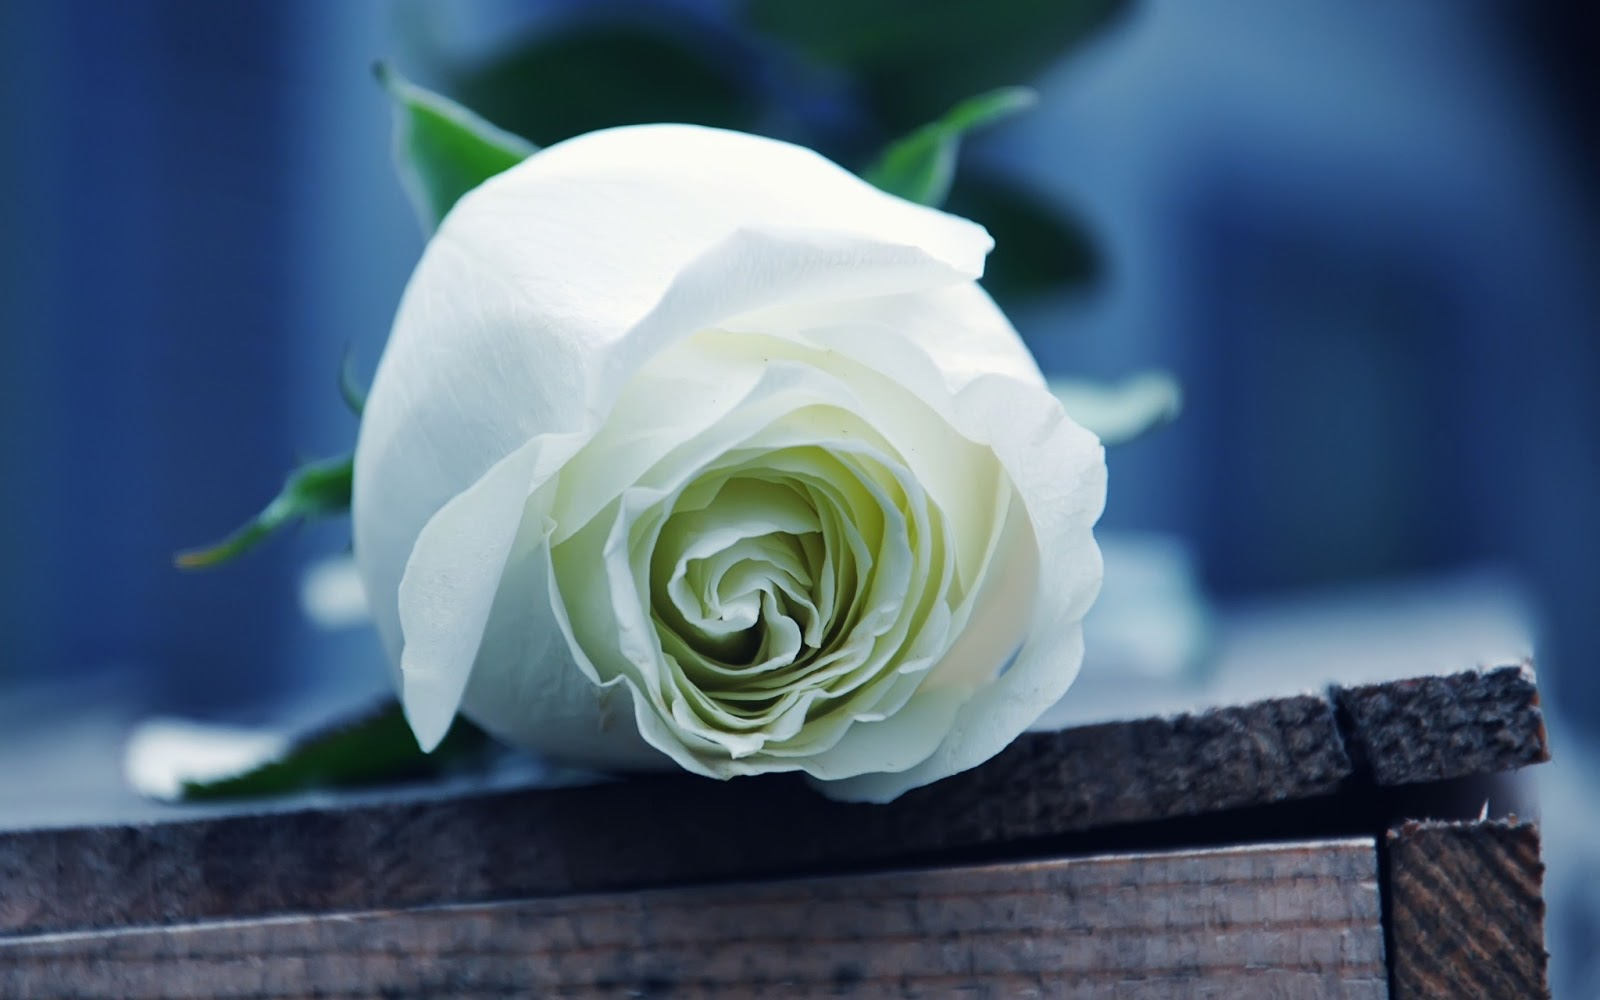 how to make a rose appear out of thin air